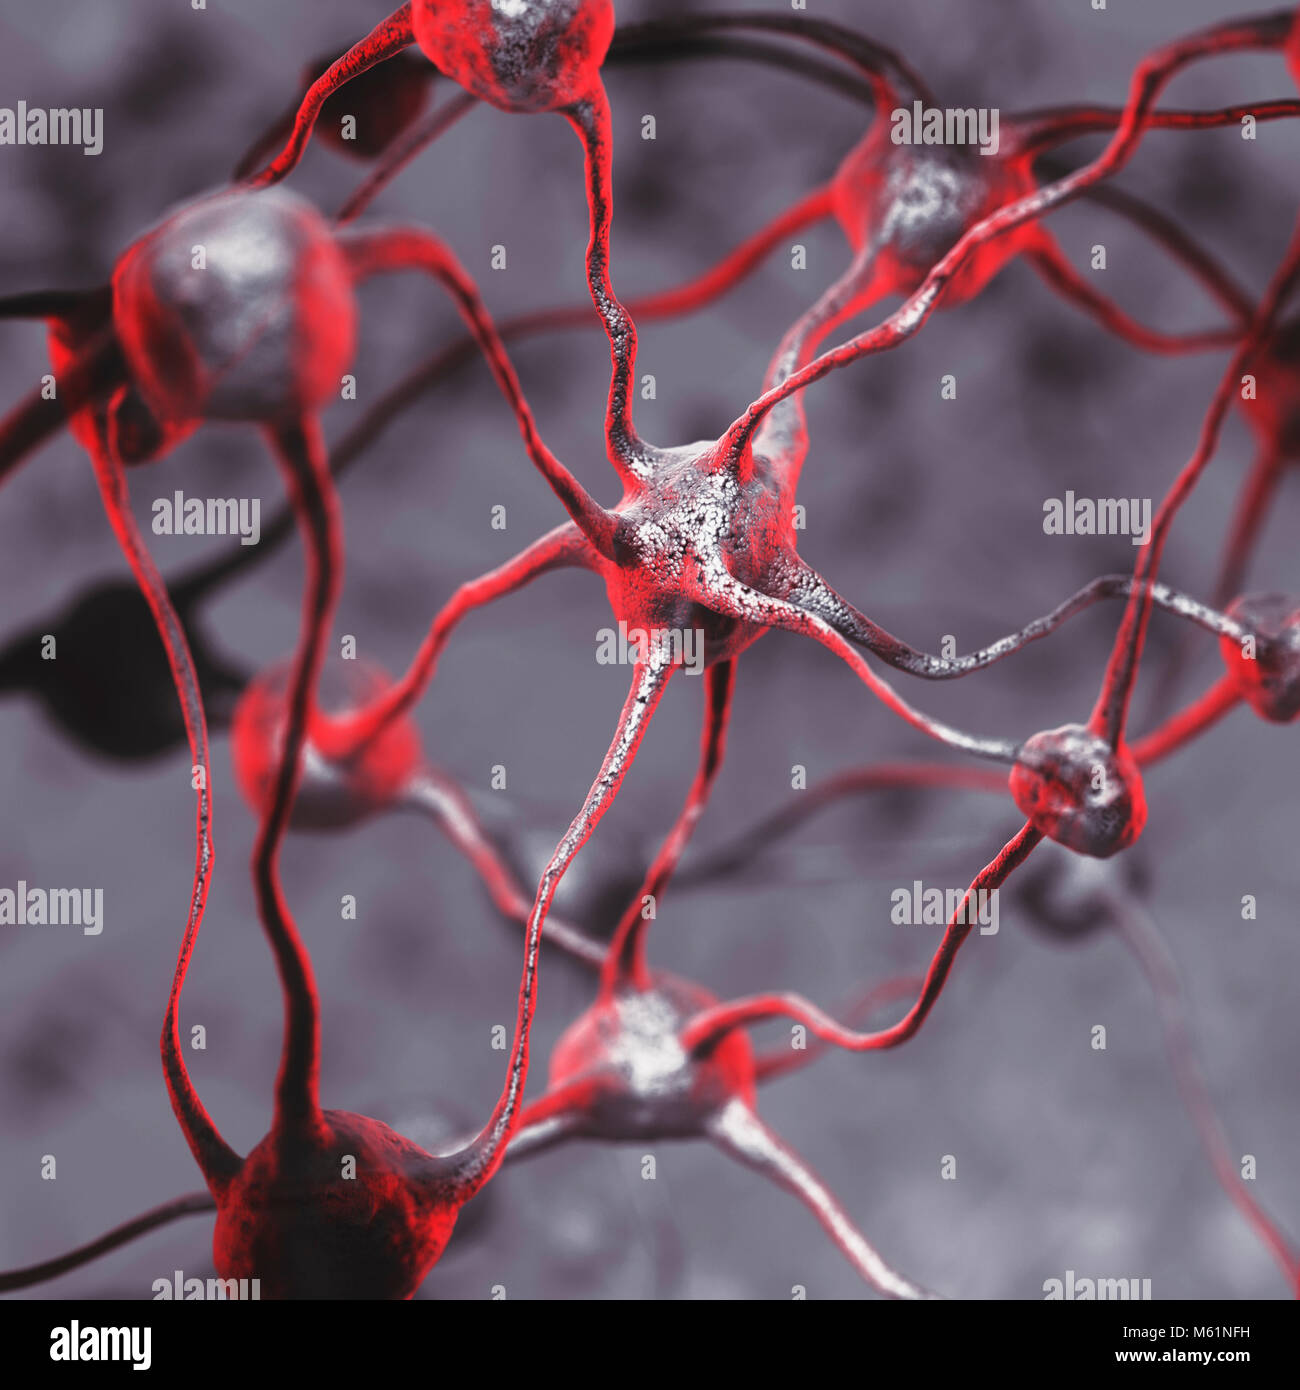 3D illustration of a Biological Neural network of a human brain, interconnected neurons, brain cells and connections, - Stock Image